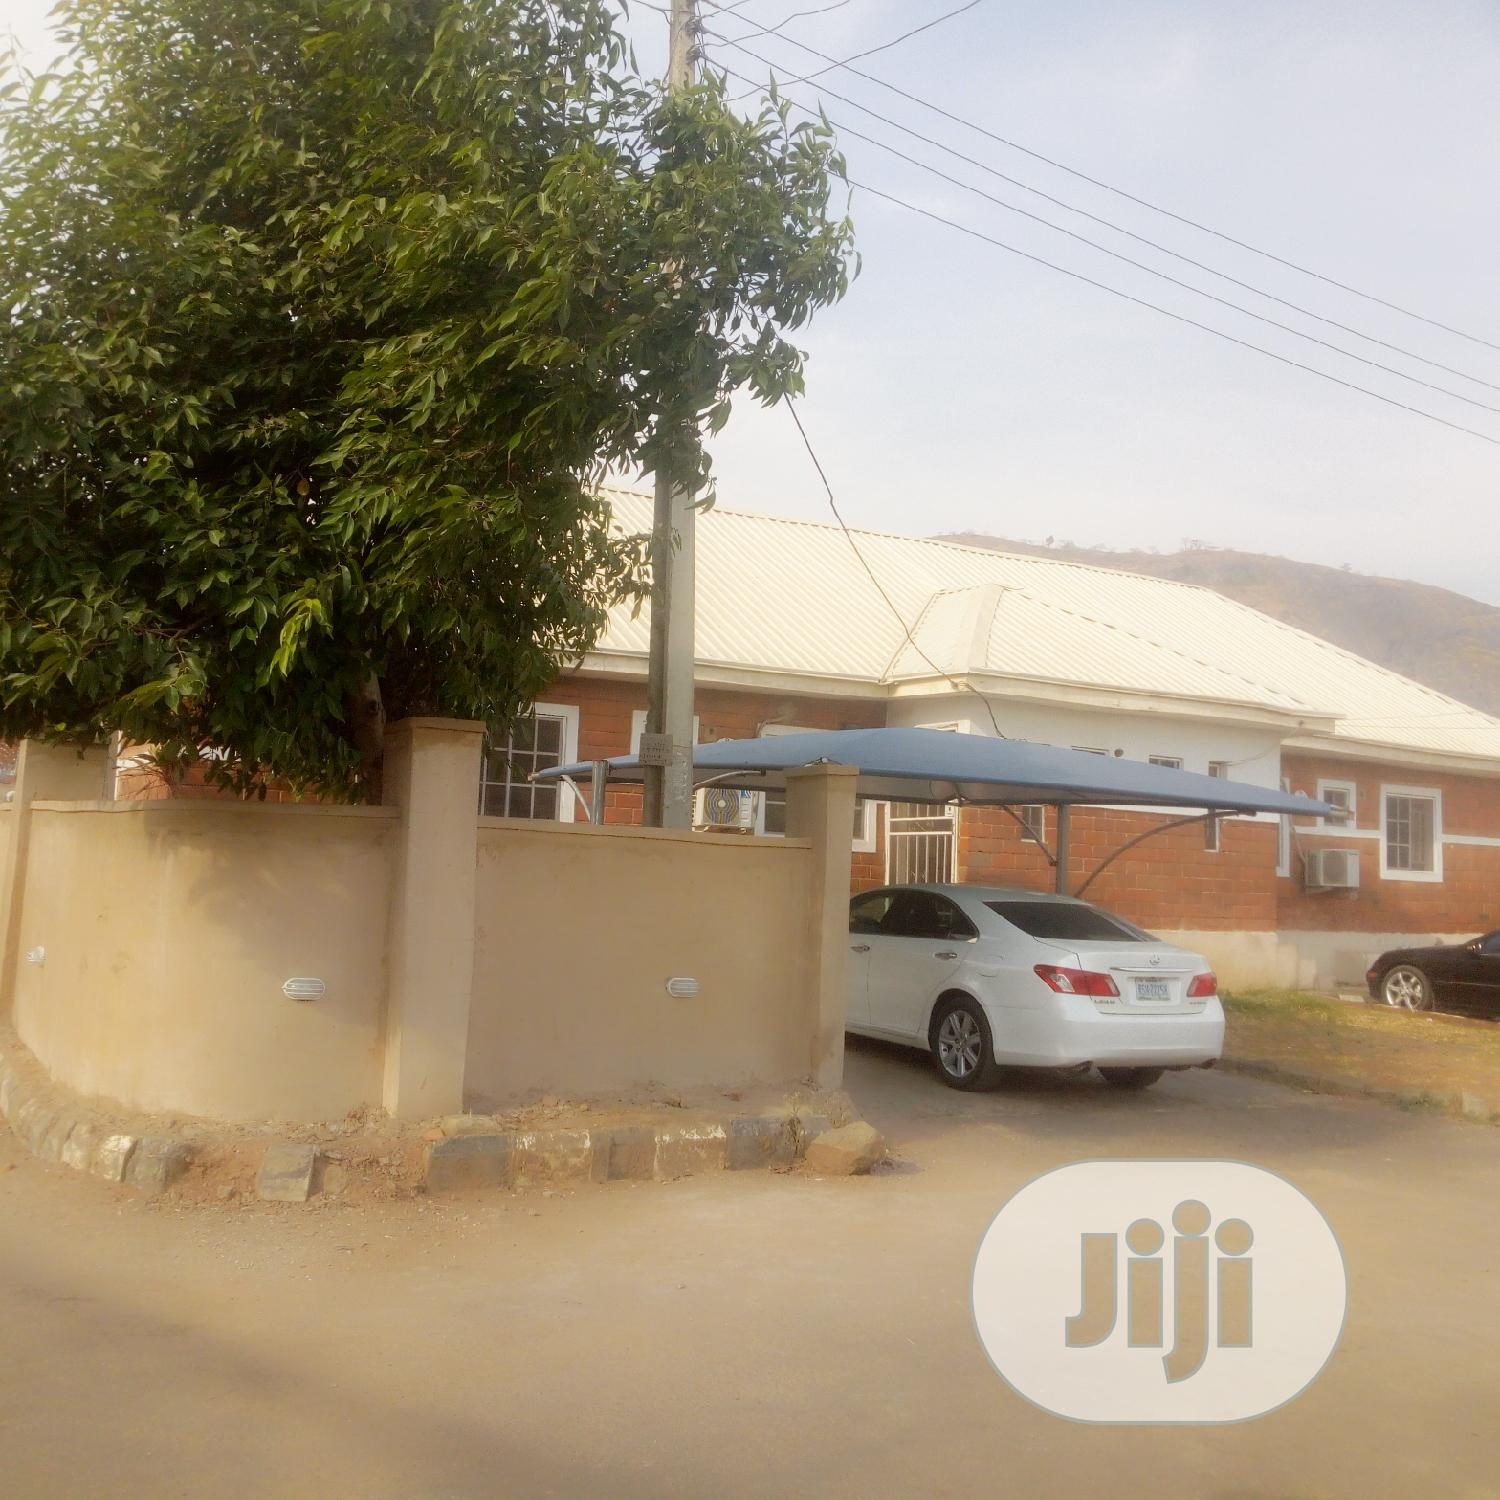 2 Bedroom Bugalow In Self Compound For Sale In An Estate | Houses & Apartments For Sale for sale in Kubwa, Abuja (FCT) State, Nigeria